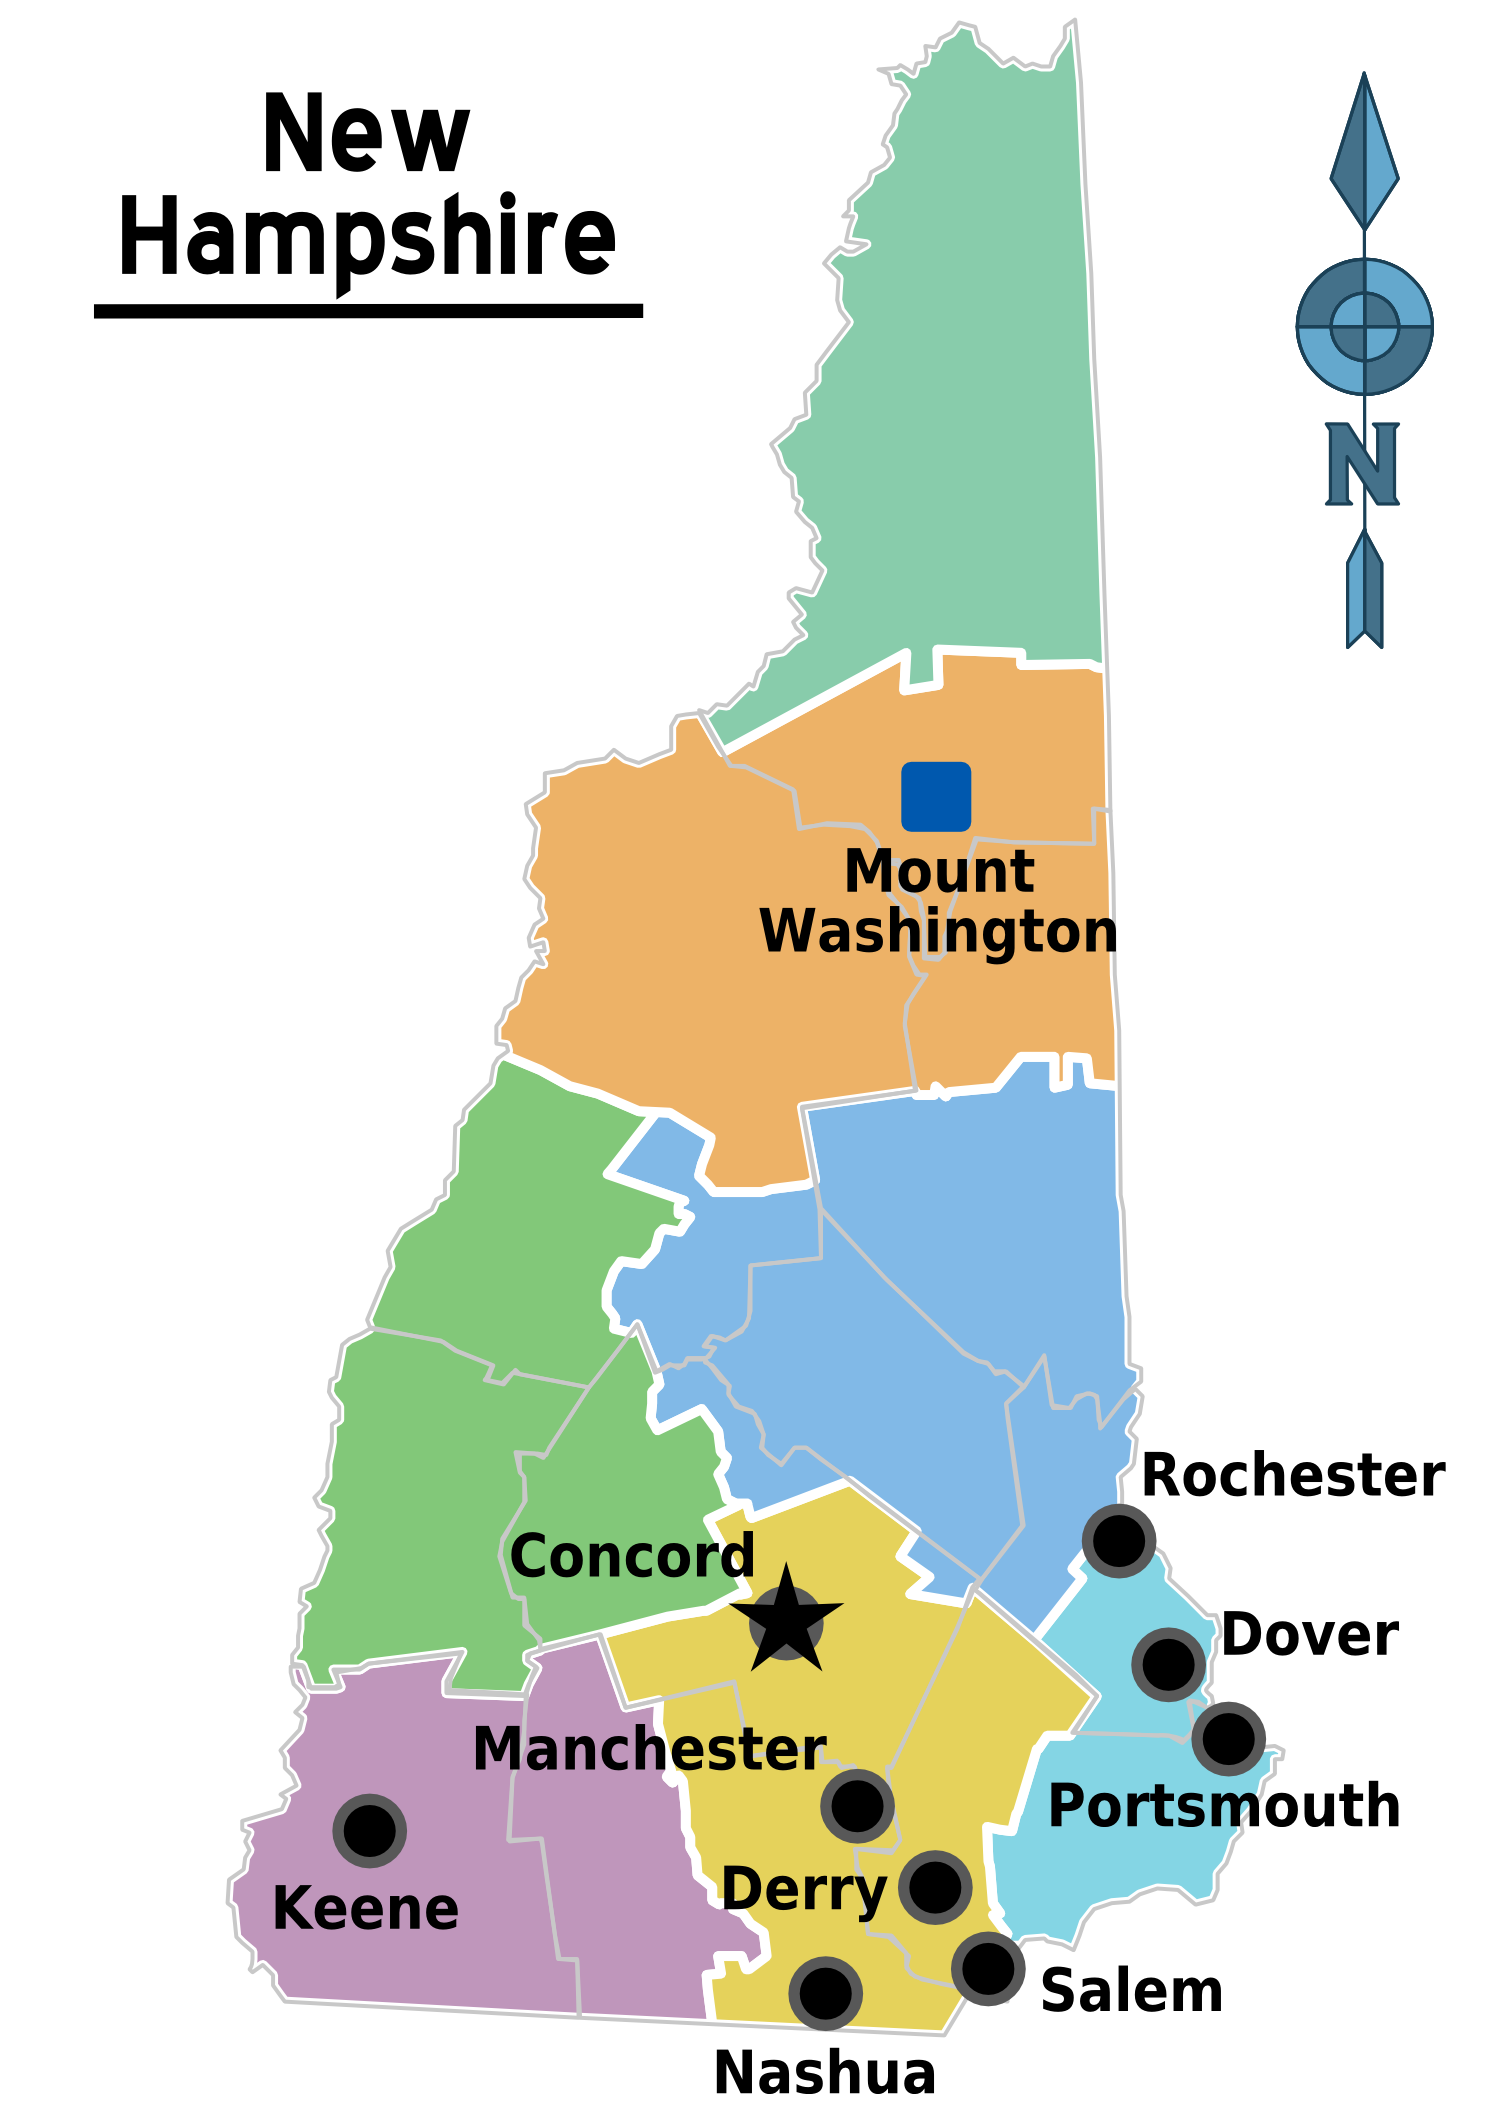 White Mountains Region - Wikipedia on coos county nh town map, alton nh town map, new boston nh town map, gorham nh town map, pelham nh town map, carroll county nh town map, gilmanton nh town map, newton nh town map, peterborough nh town map,